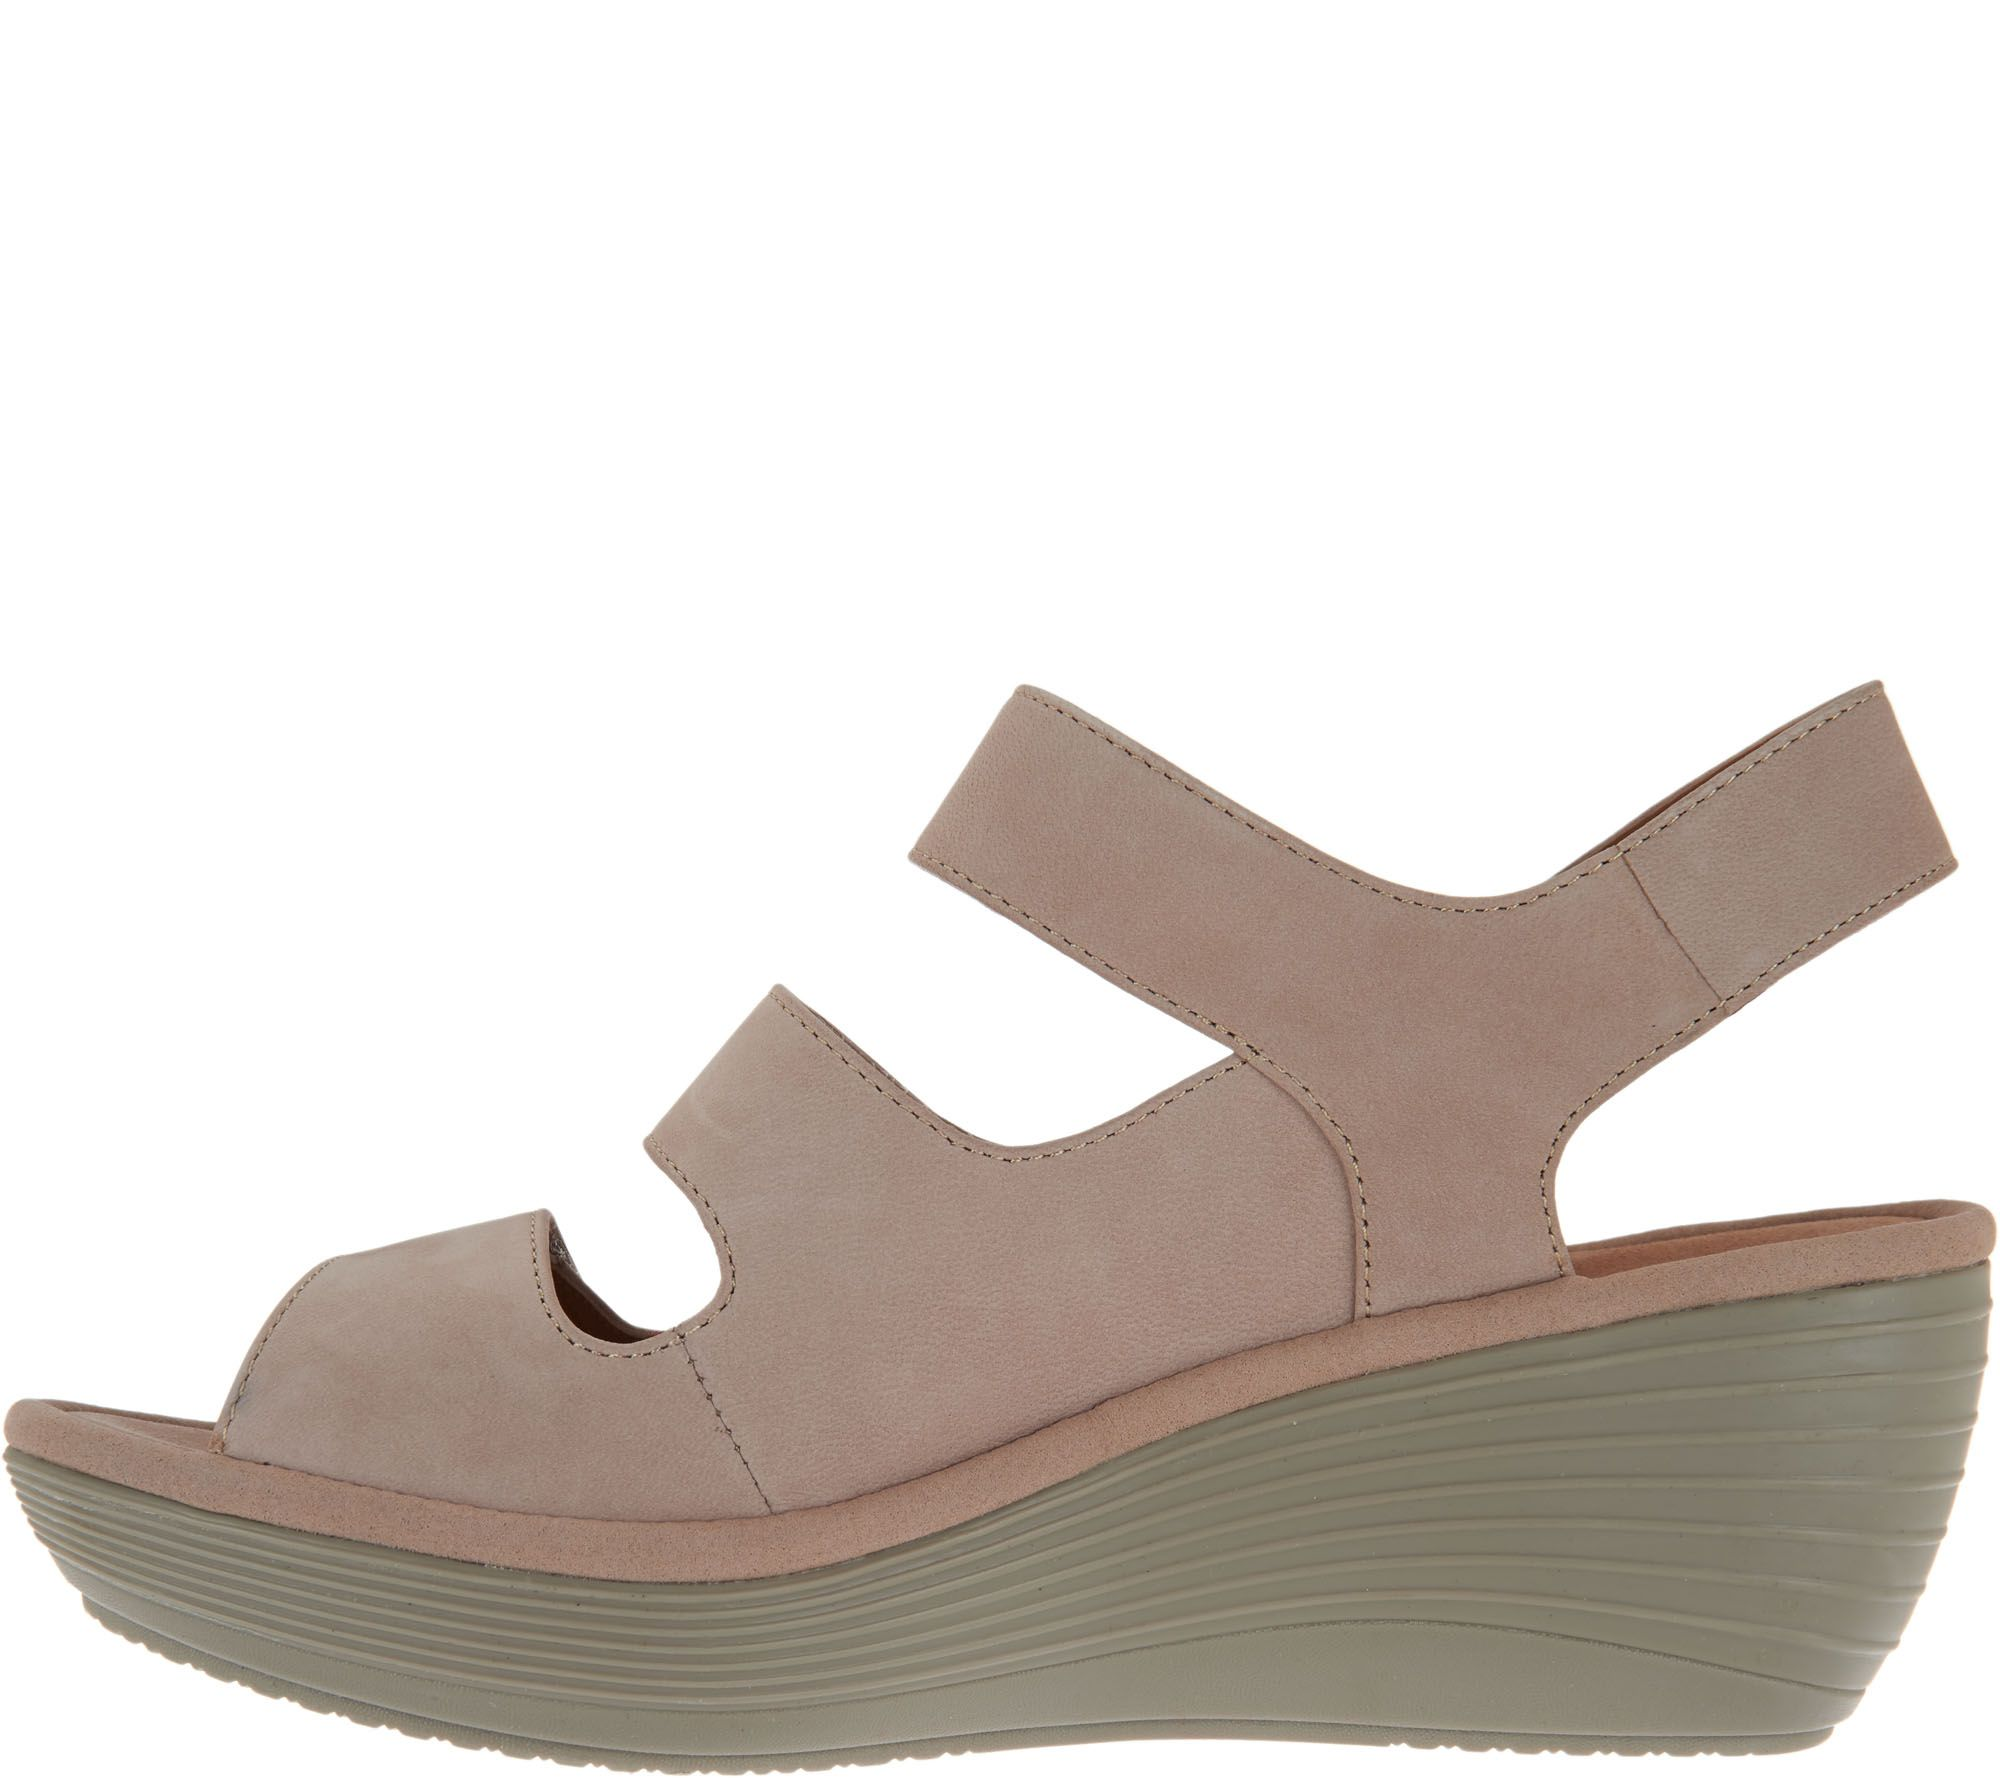 Clarks Nubuck Triple Strap Wedge Sandals Reedly Juno